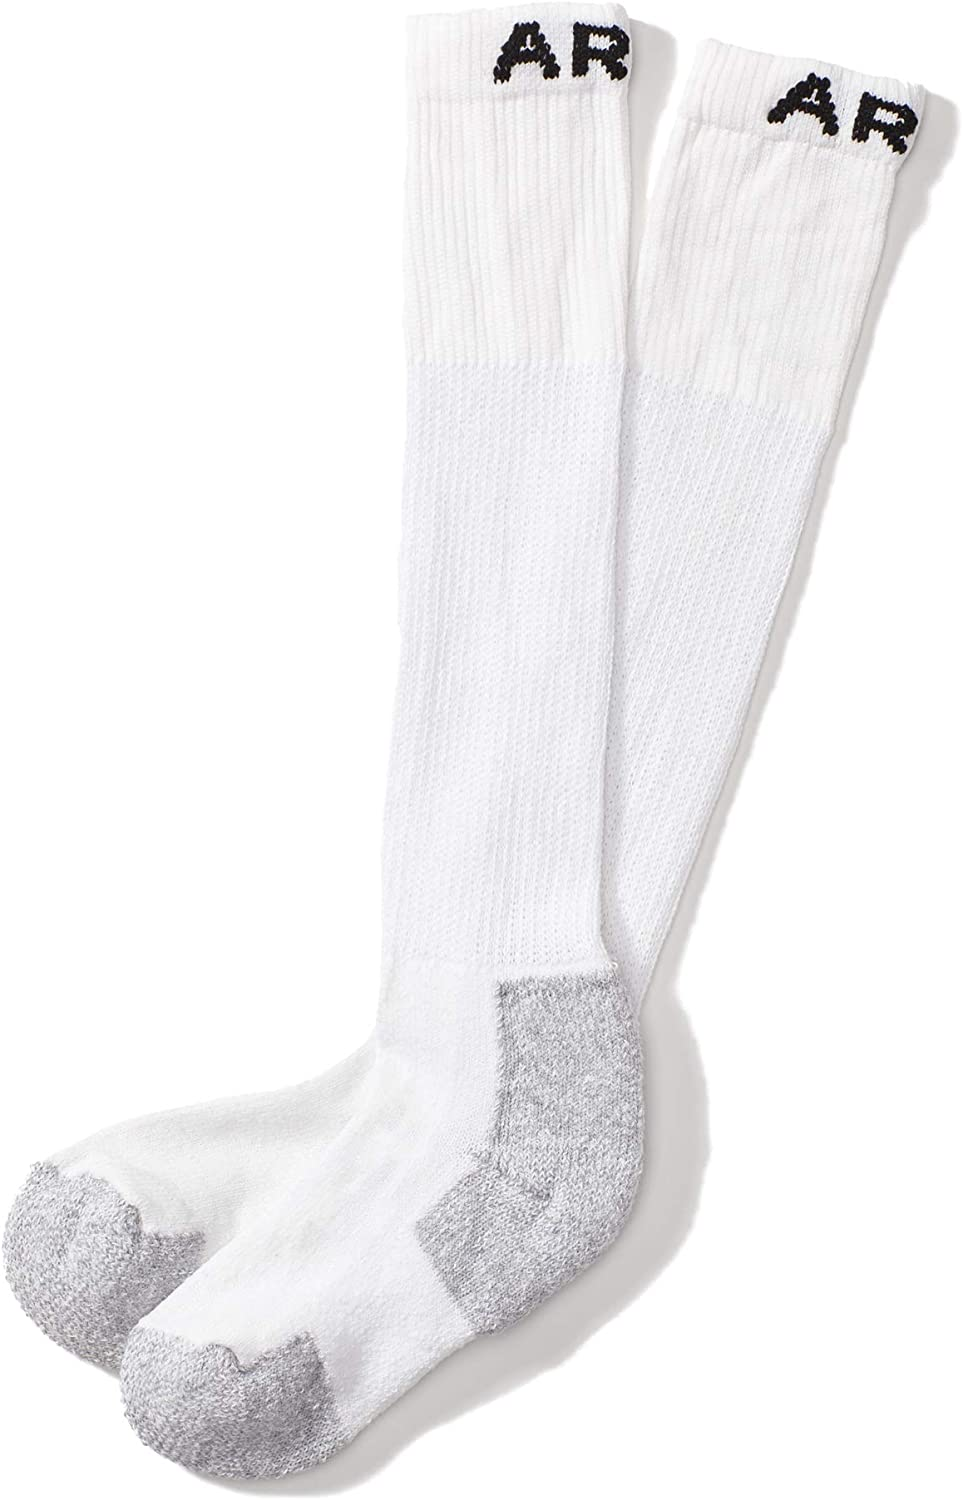 Ariat Men's Ariat Over The Calf Sport Socks